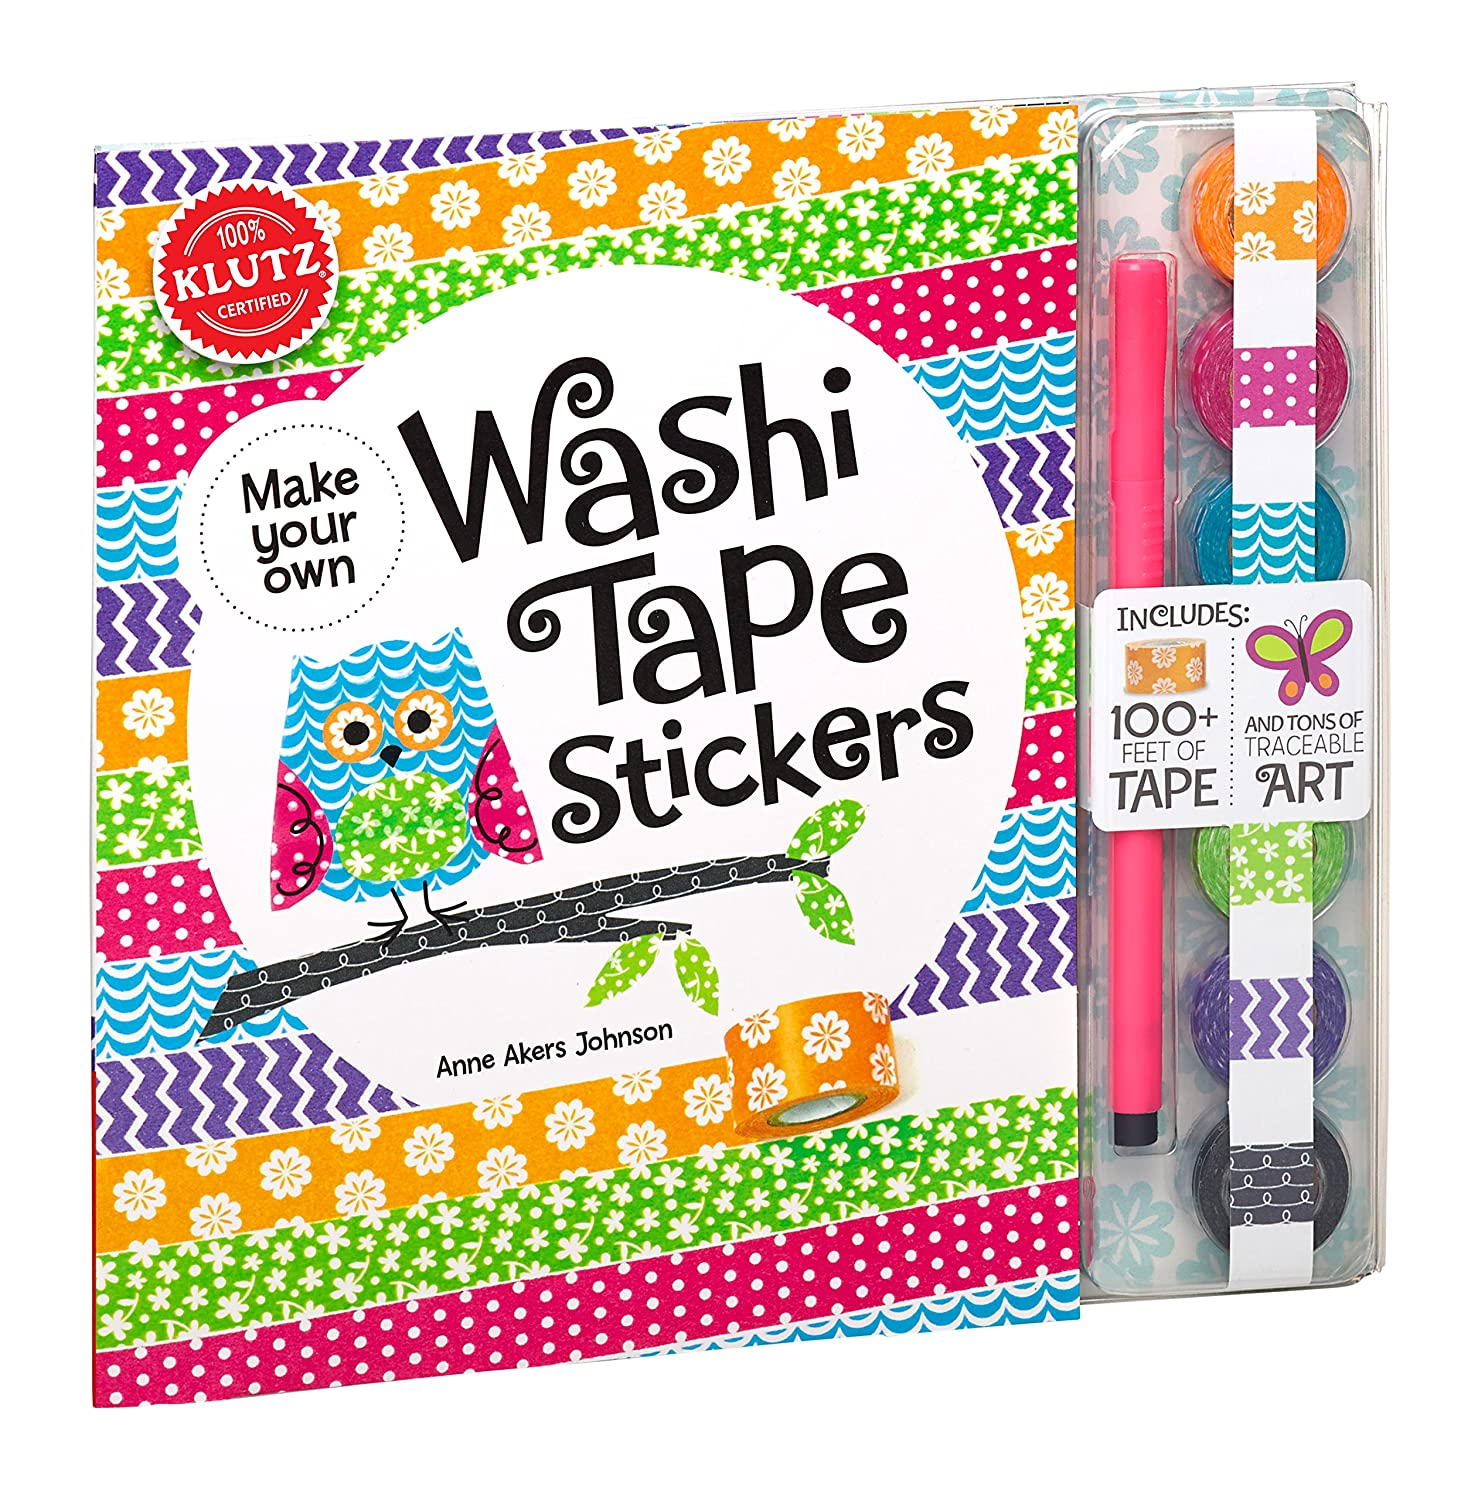 Amazon com klutz make your own washi tape stickers shape this tape into crazy cute stickers craft kit anne akers johnson toys games